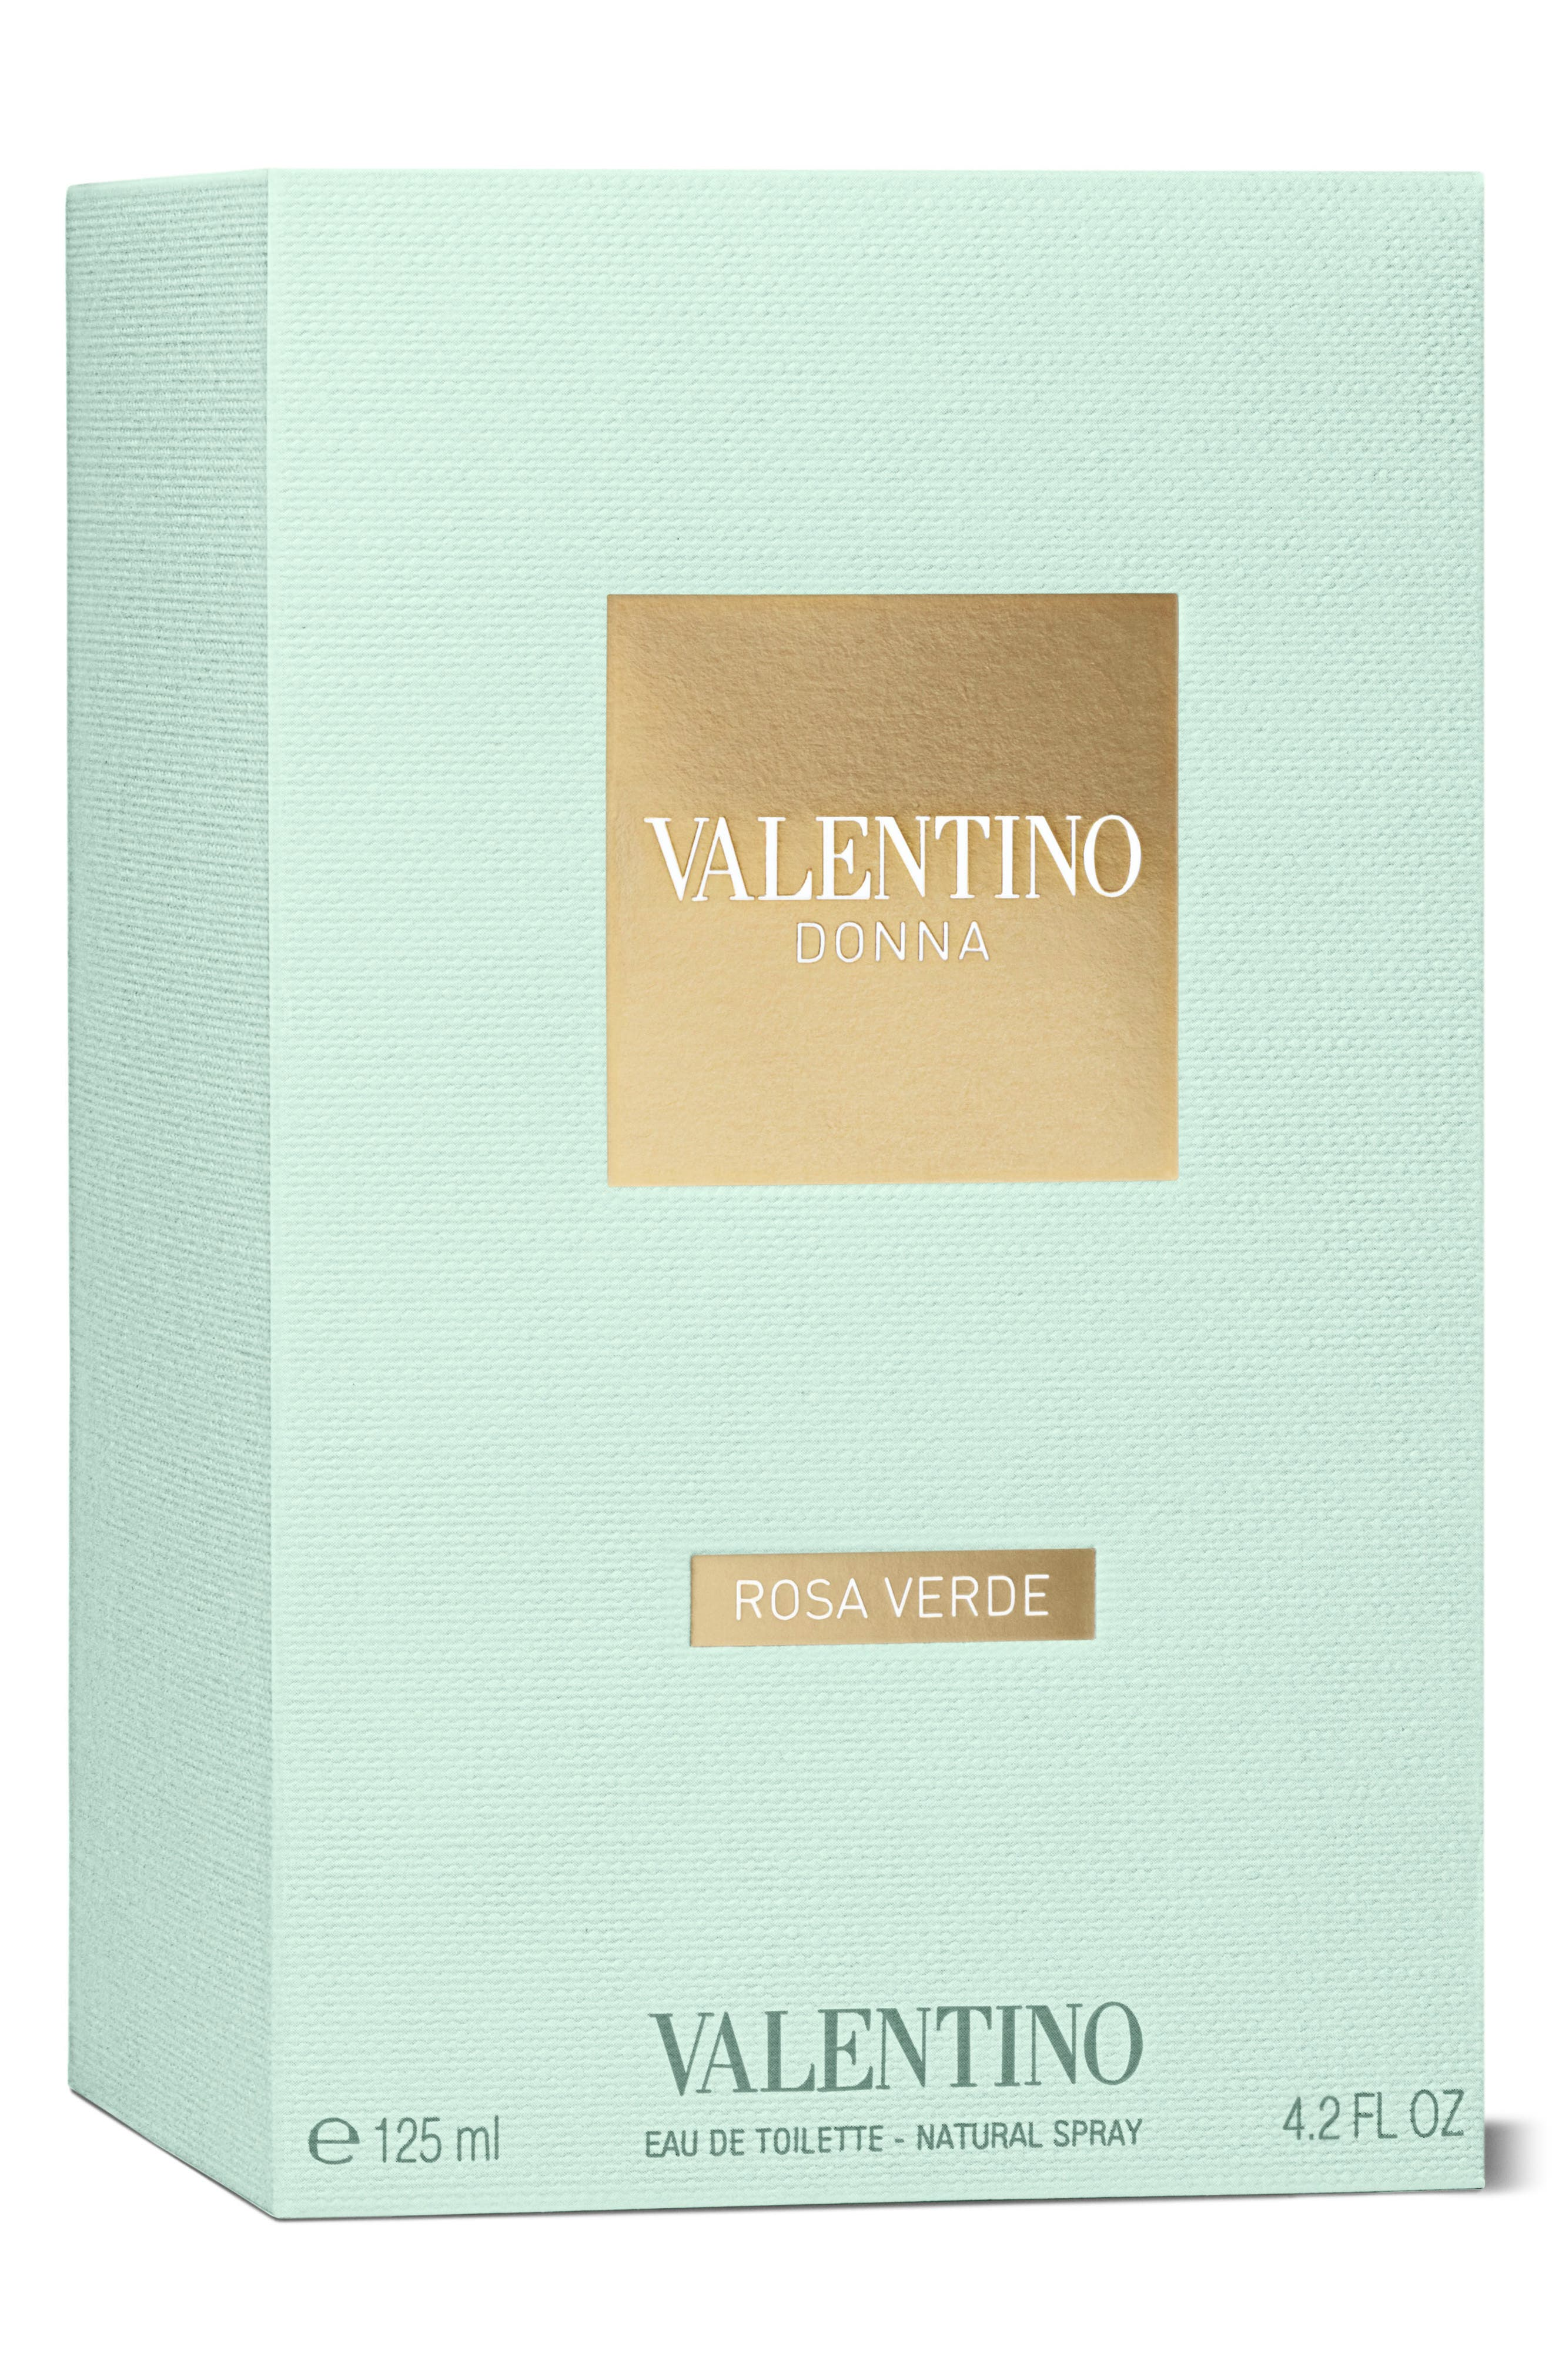 VALENTINO, Donna Rosa Verde Eau de Toilette, Alternate thumbnail 2, color, NO COLOR